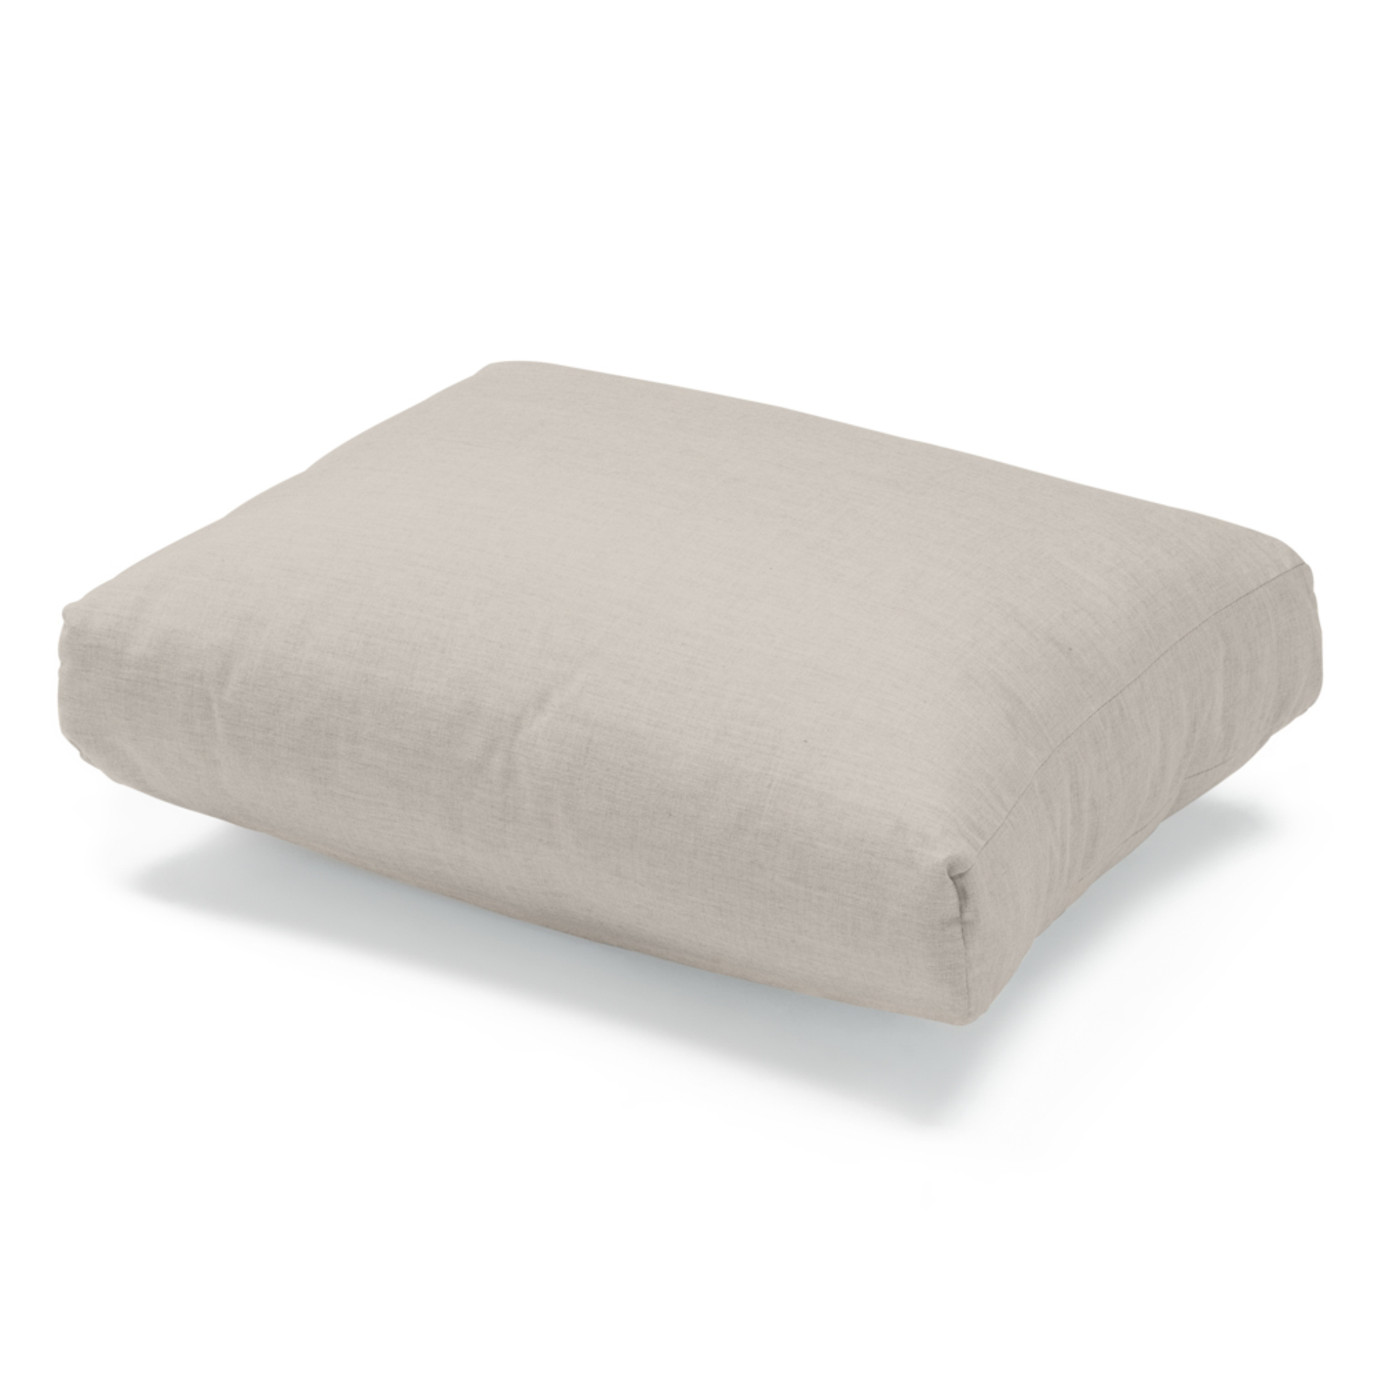 Portofino Comfort Corner Chair Small Back Cushion - Taupe Mist